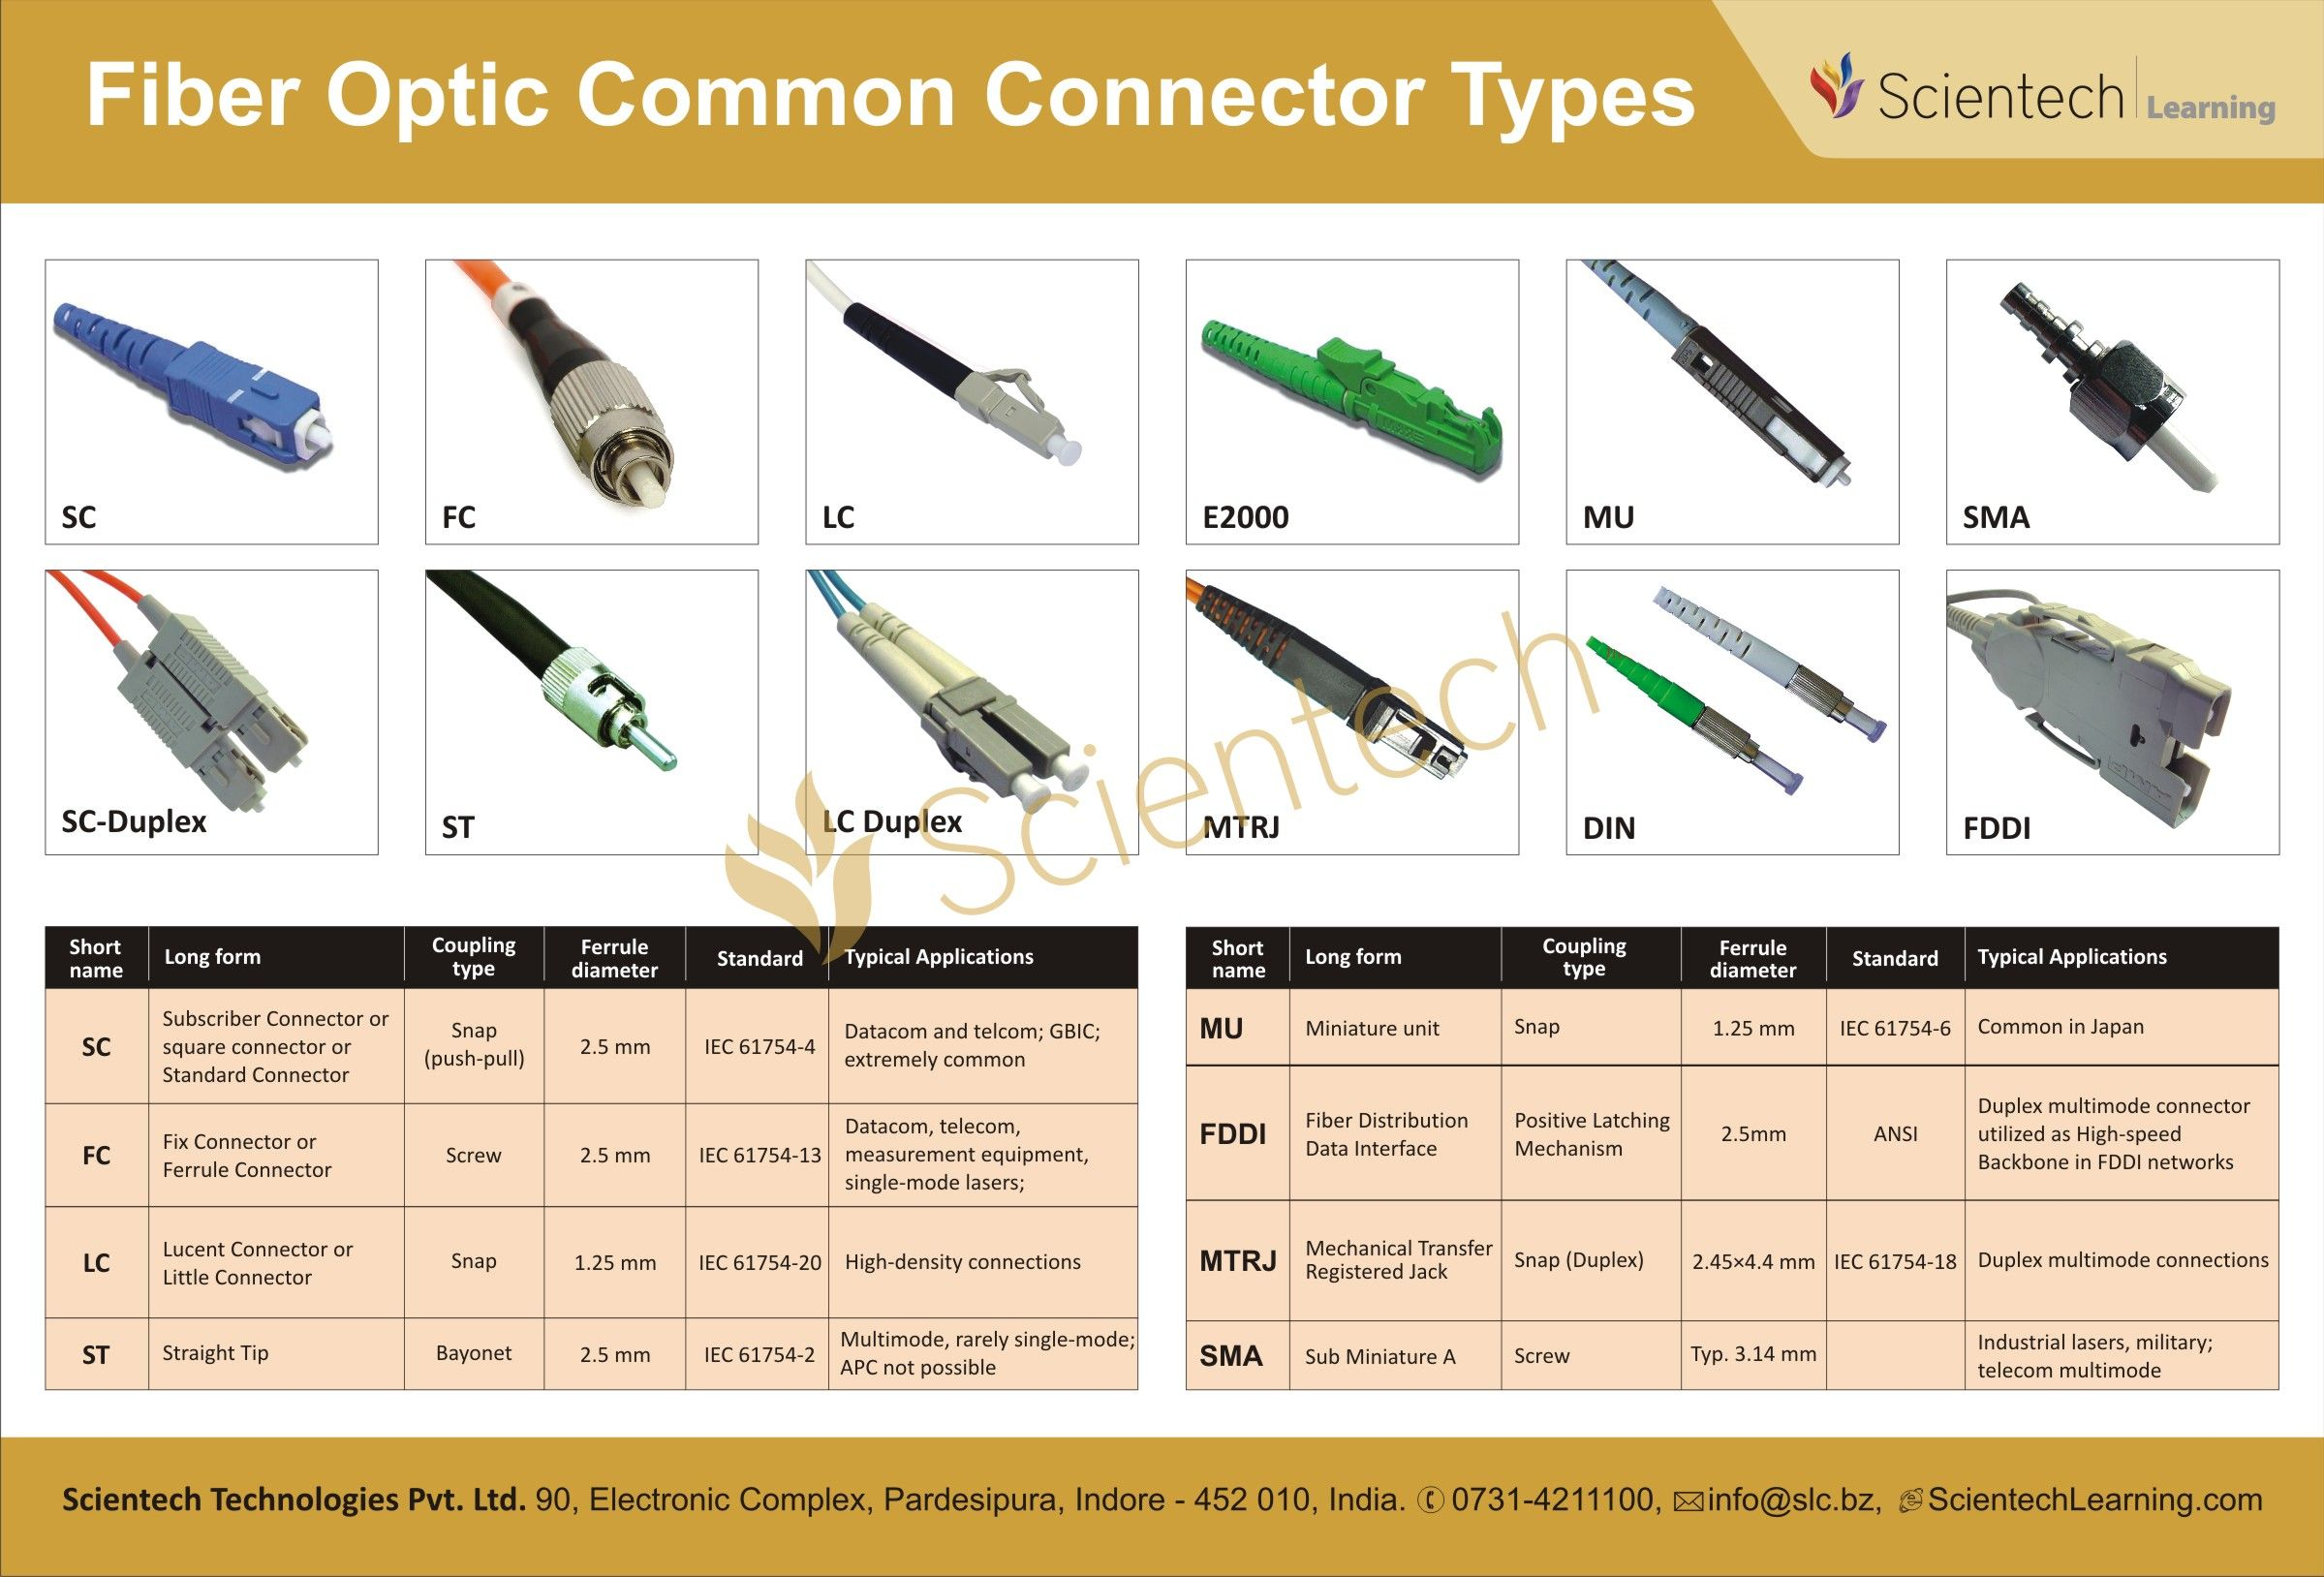 Fibre Optic Connector Types